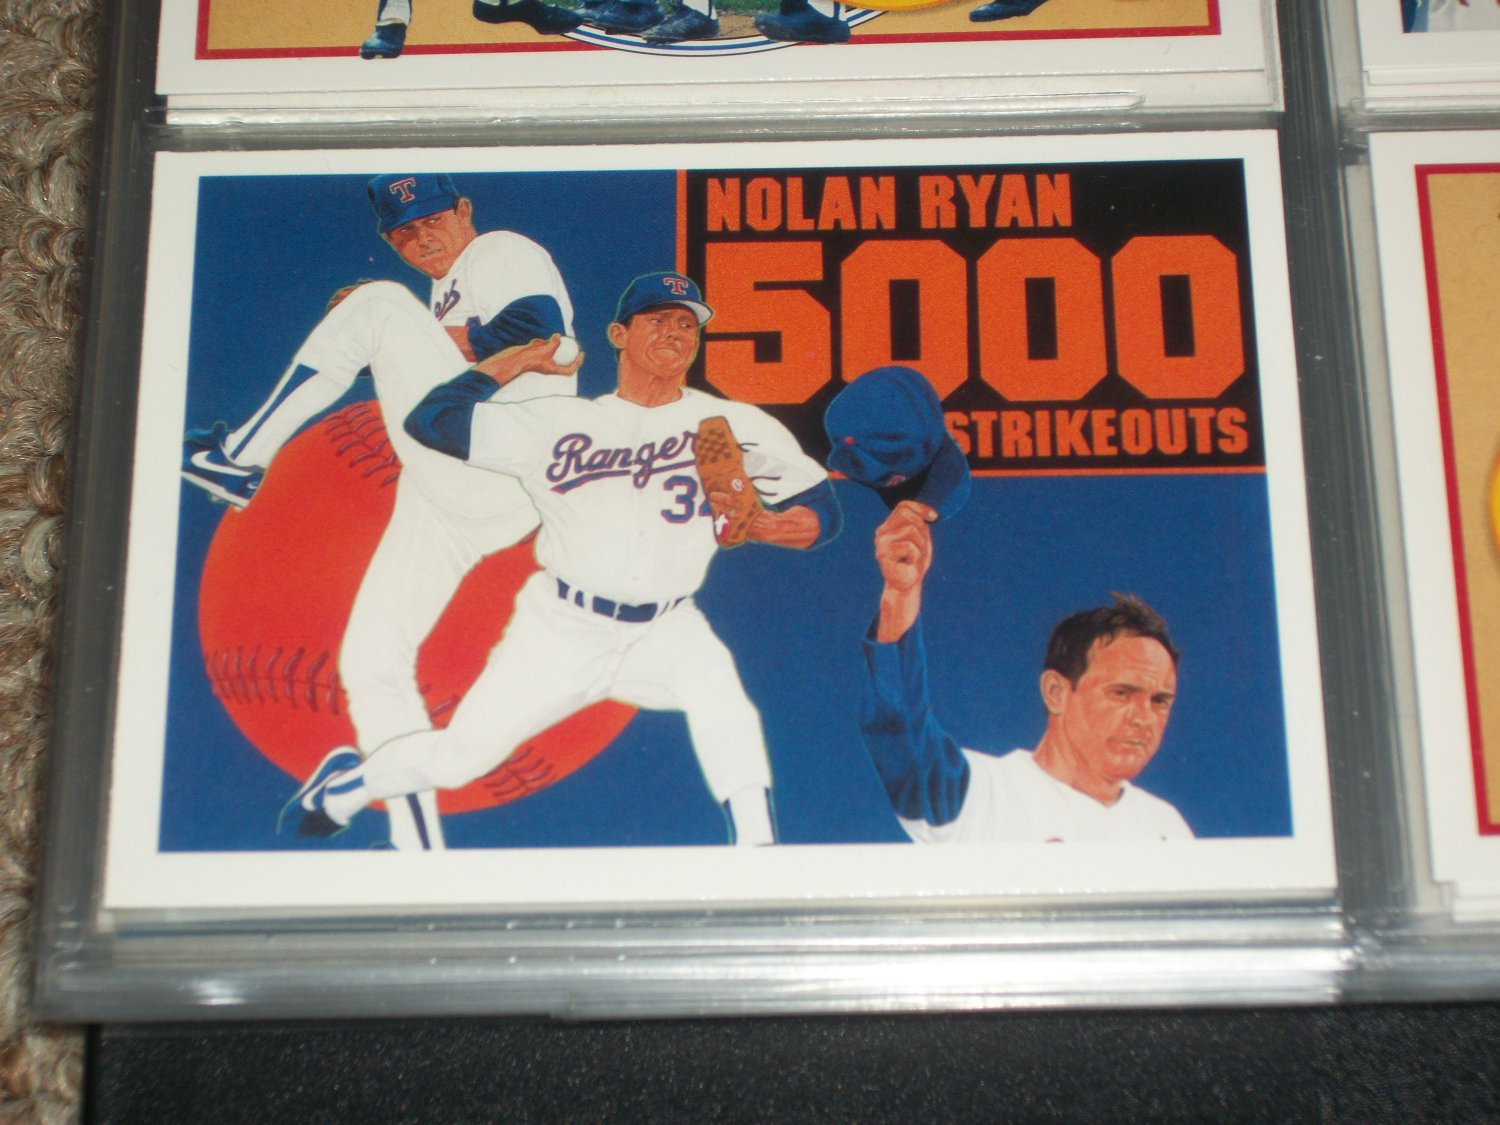 How To Figure Out Sales Tax >> Nolan Ryan 1990 UD Baseball card- RARE 5000TH STRIKEOUT ...